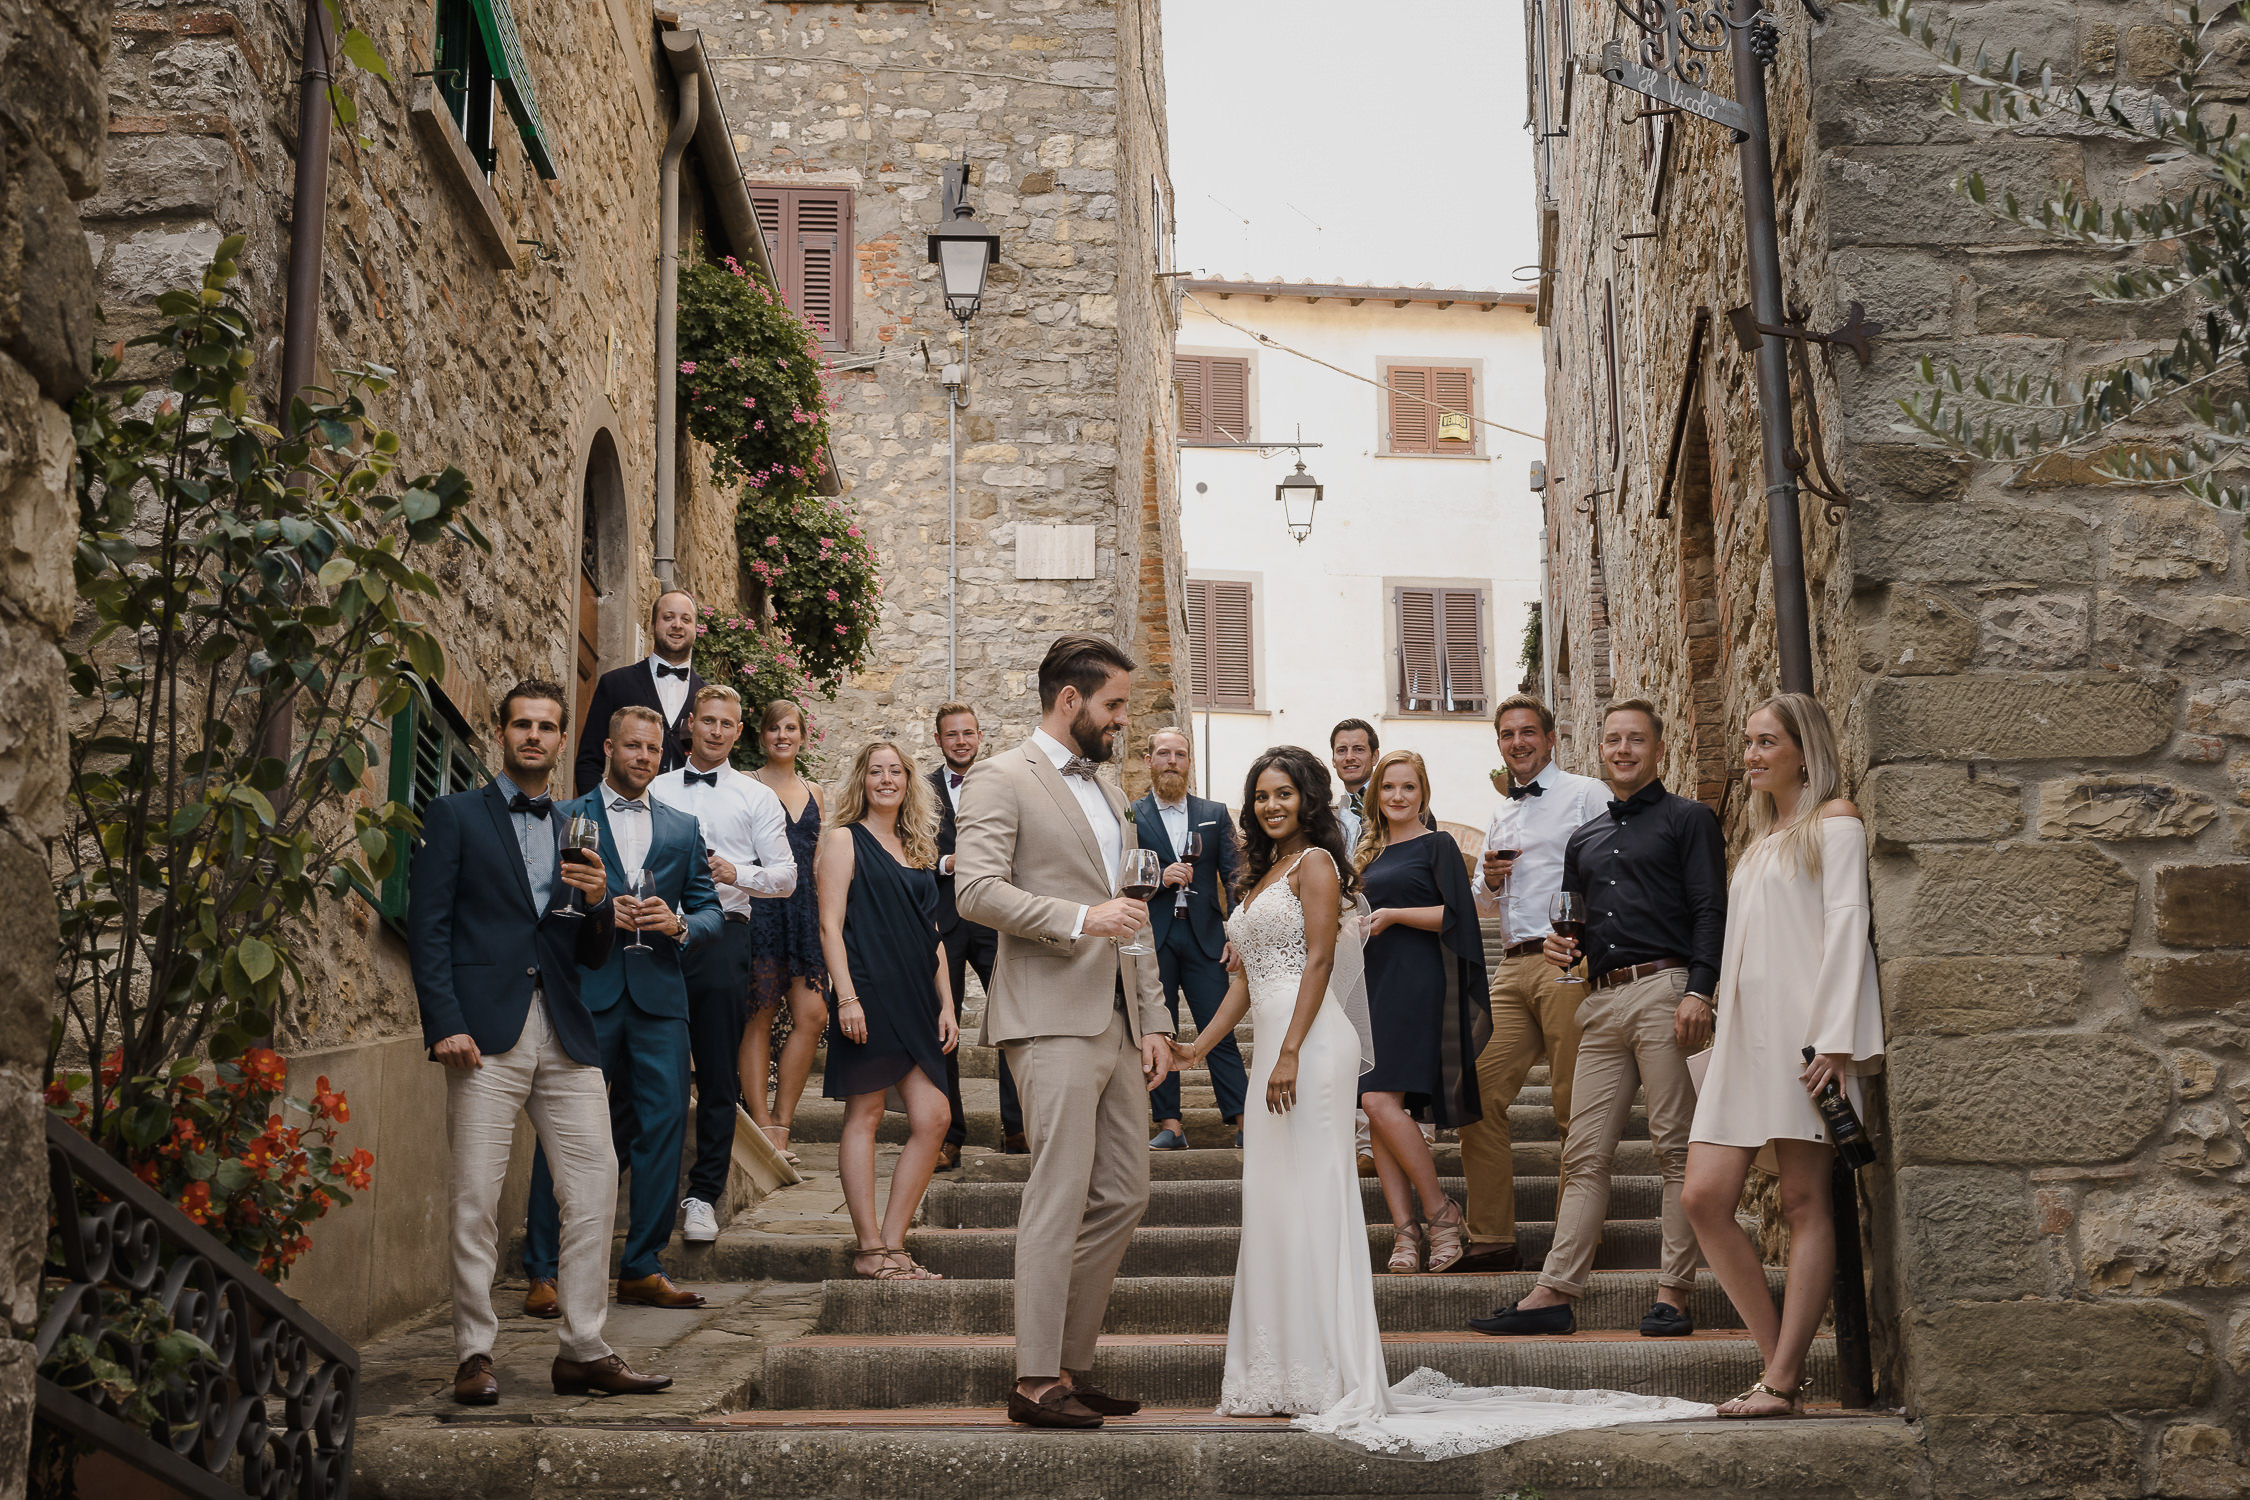 wedding photography amsterdam - bridal party shot in Tuscany, mark hadden